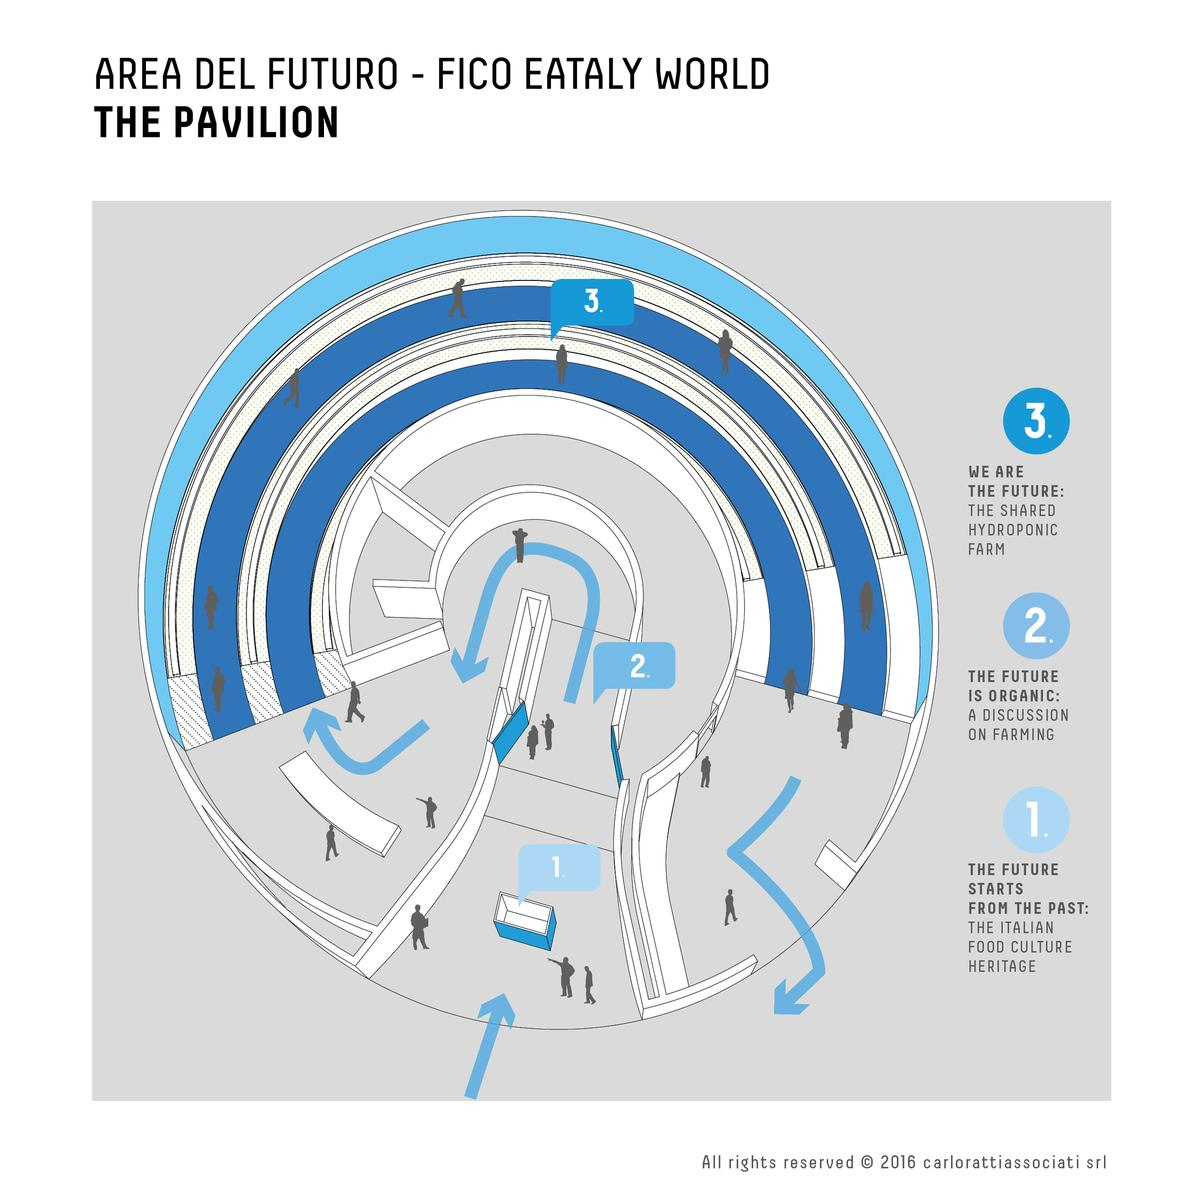 The attraction, called the Area of the Future, will be one of the centrepieces of the FICO Eataly World edutainment food theme park / Carlo Ratti Associati